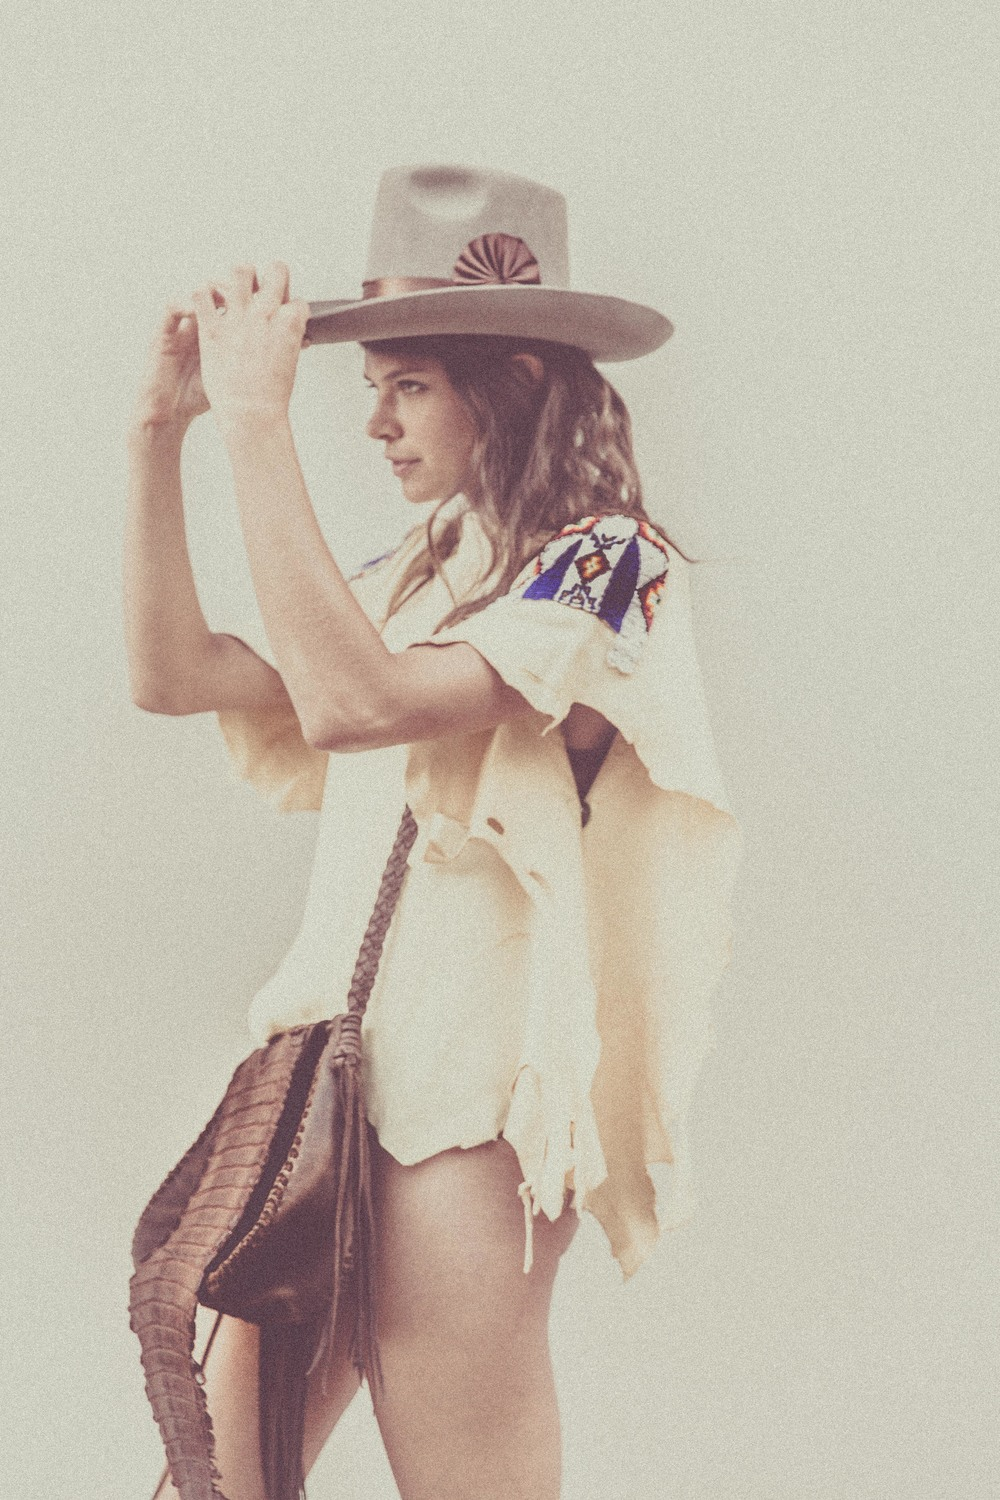 Rocio G. lookbook by Blue Caleel